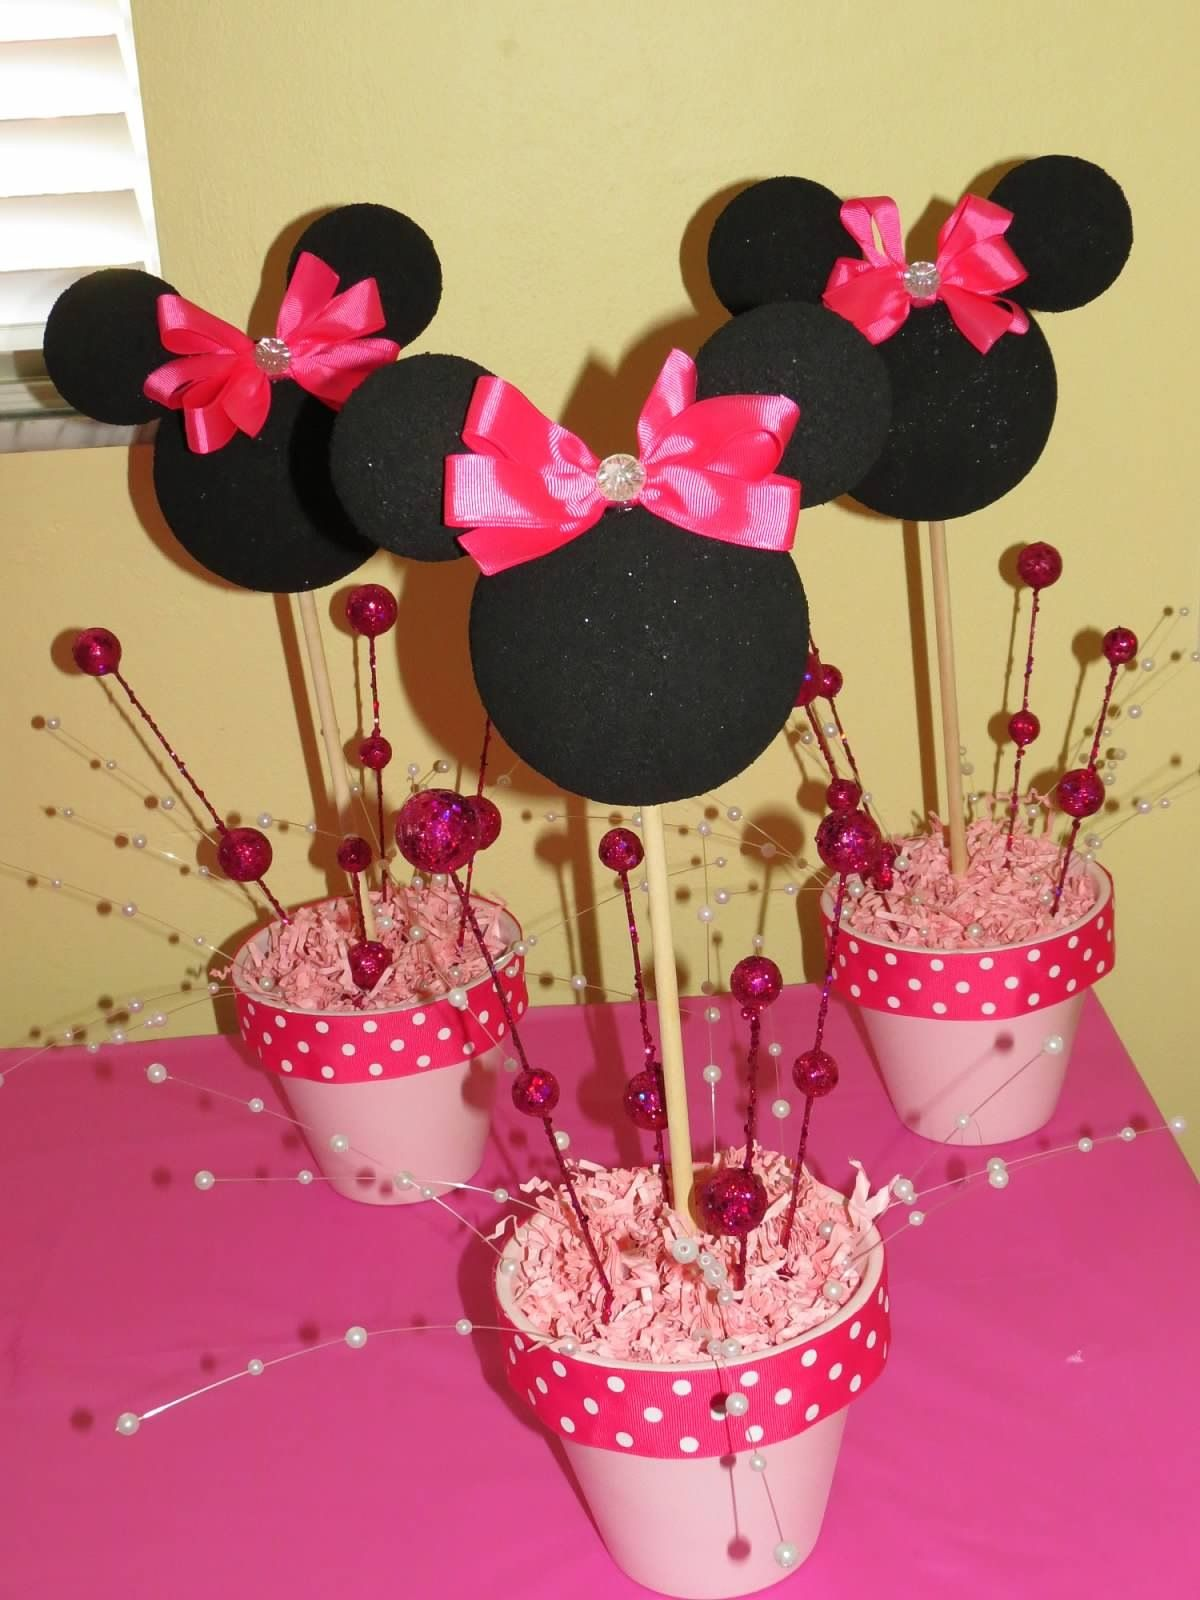 Minnie Mouse centerpieces for my Princess' 1st birthday